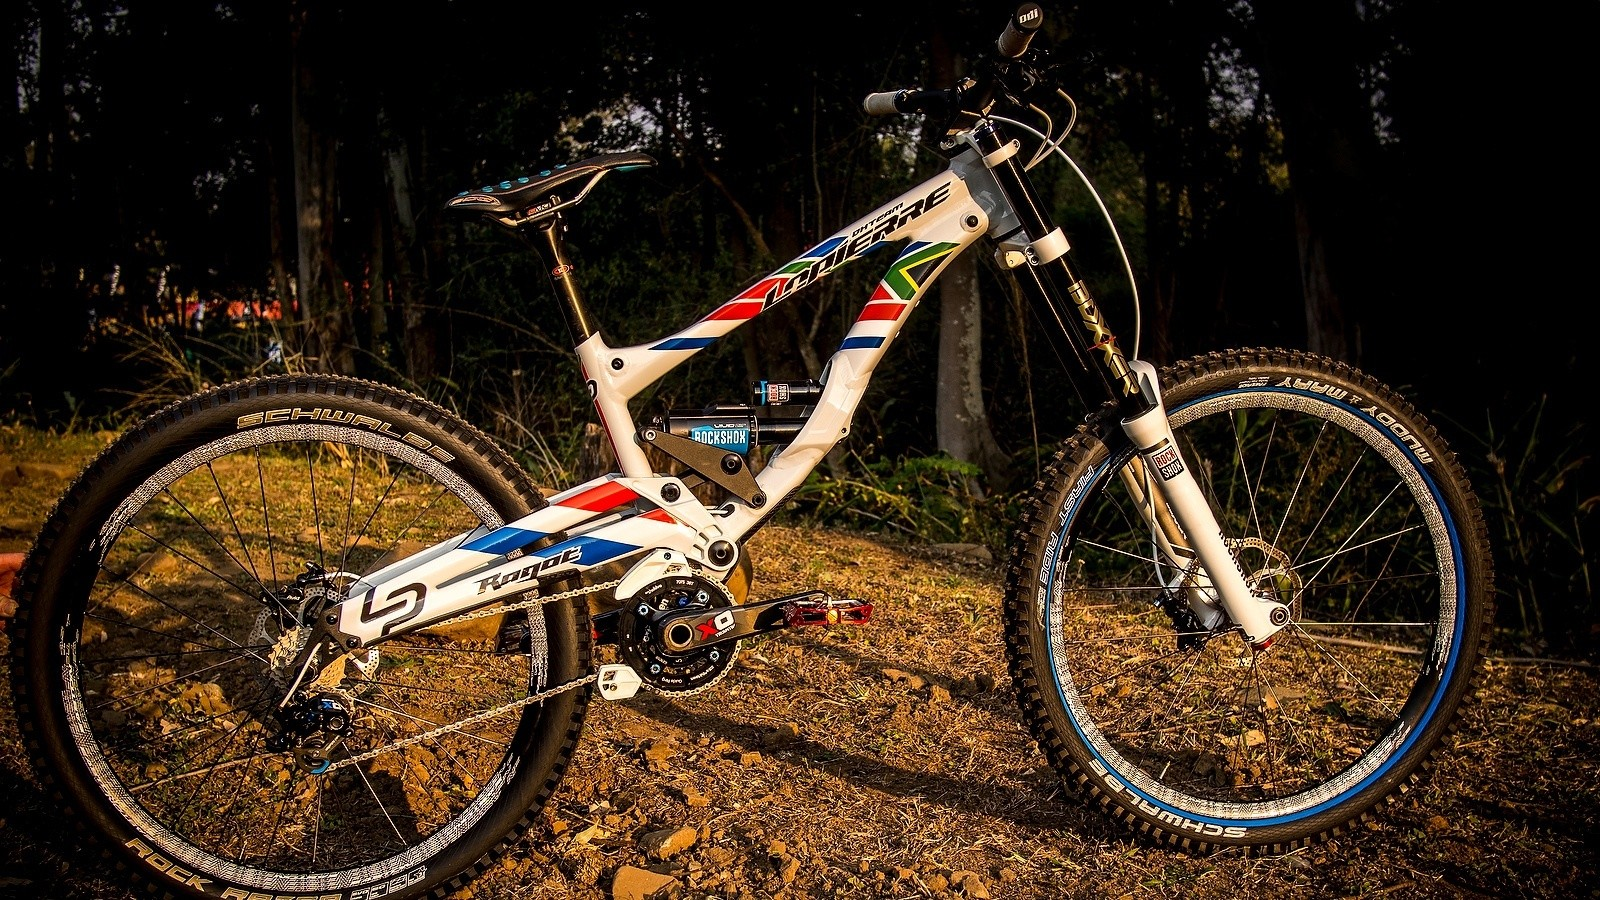 Emmeline Ragot's World Championship Lapierre DH720 - World Championships Bikes and Gear 2013 - Mountain Biking Pictures - Vital MTB